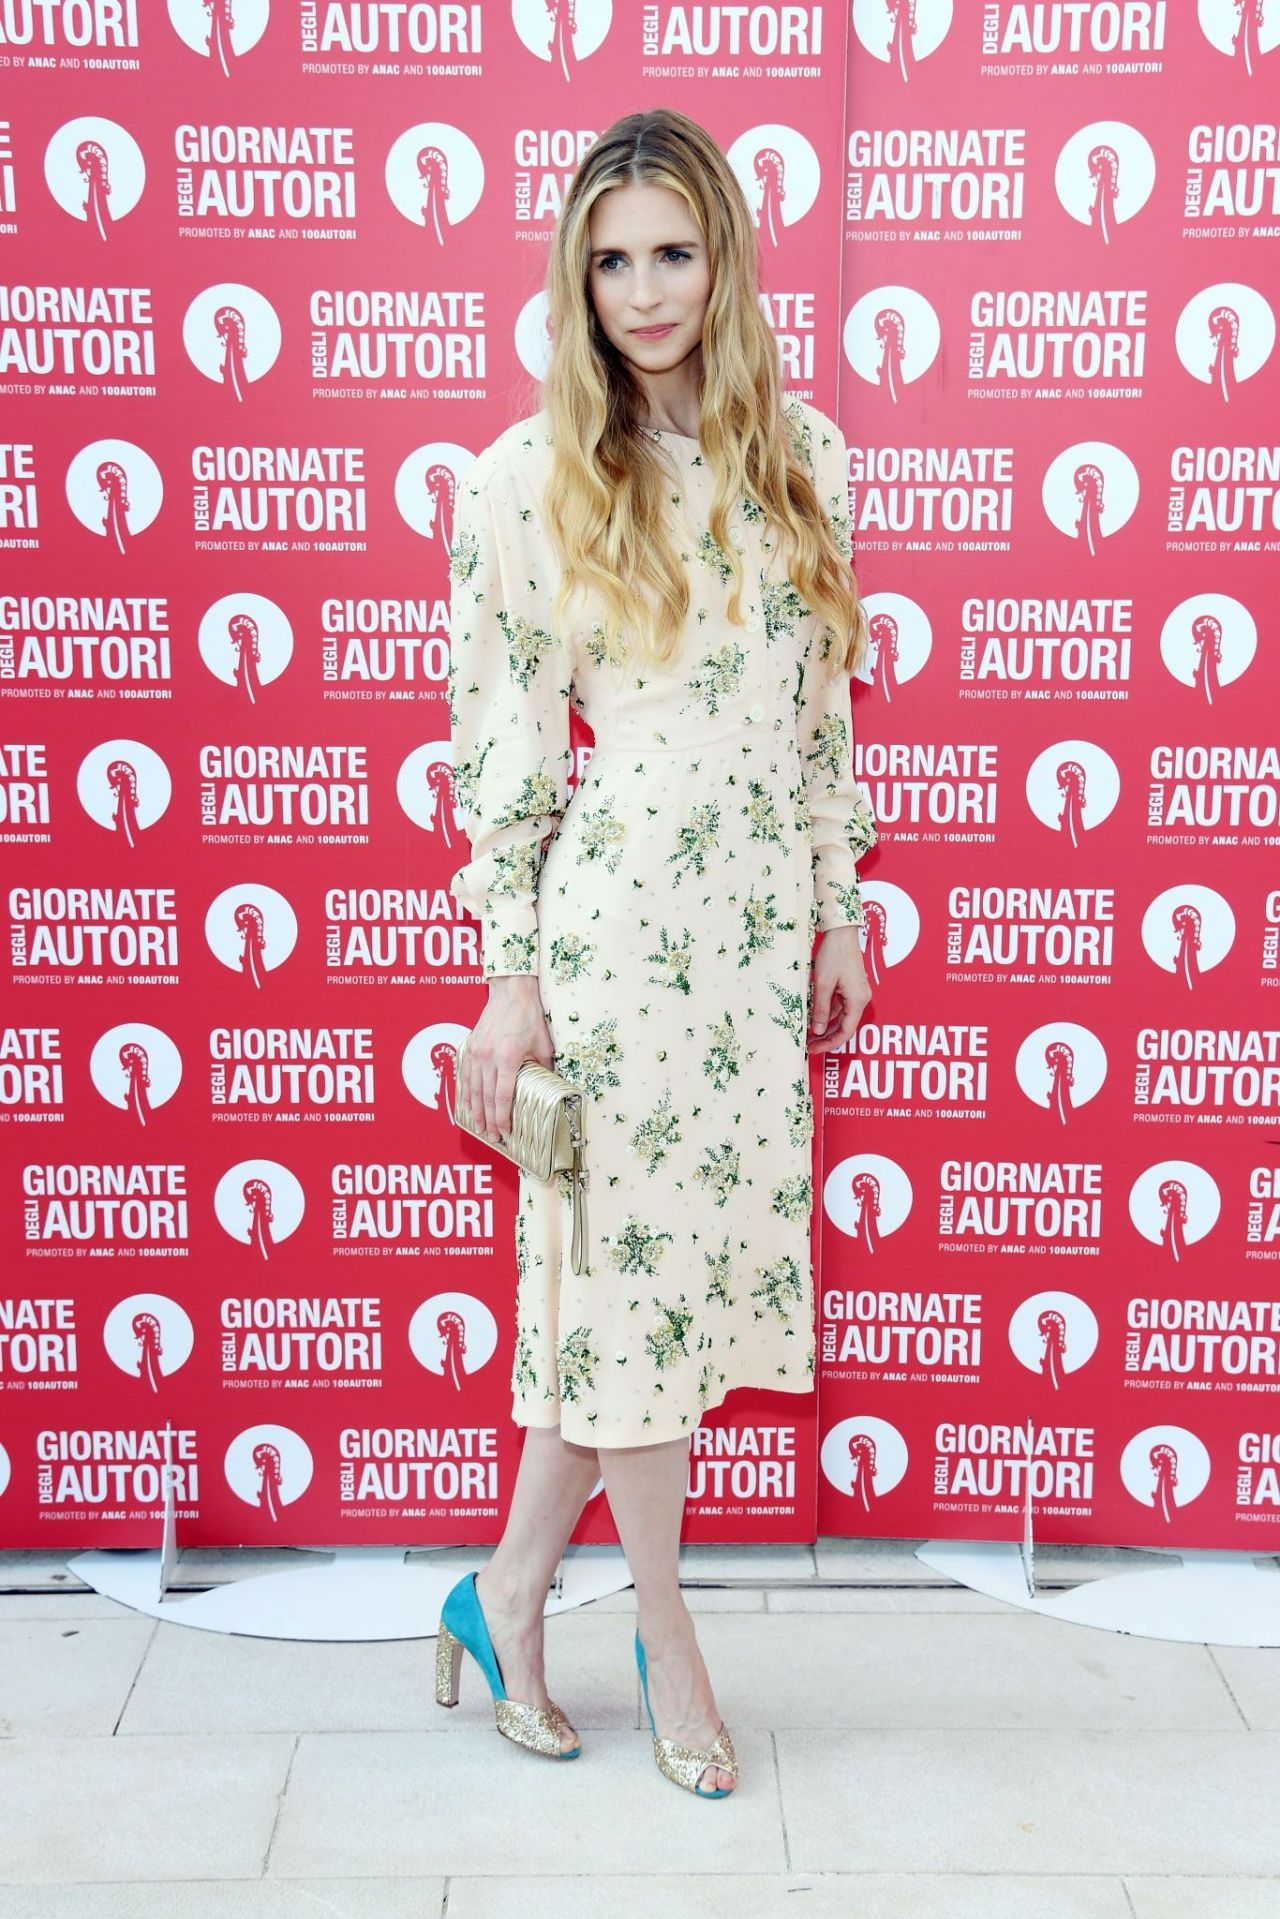 brit-marling-in-miu-miu-@-miu-miu-venice-film-festival-photocall-in-venice